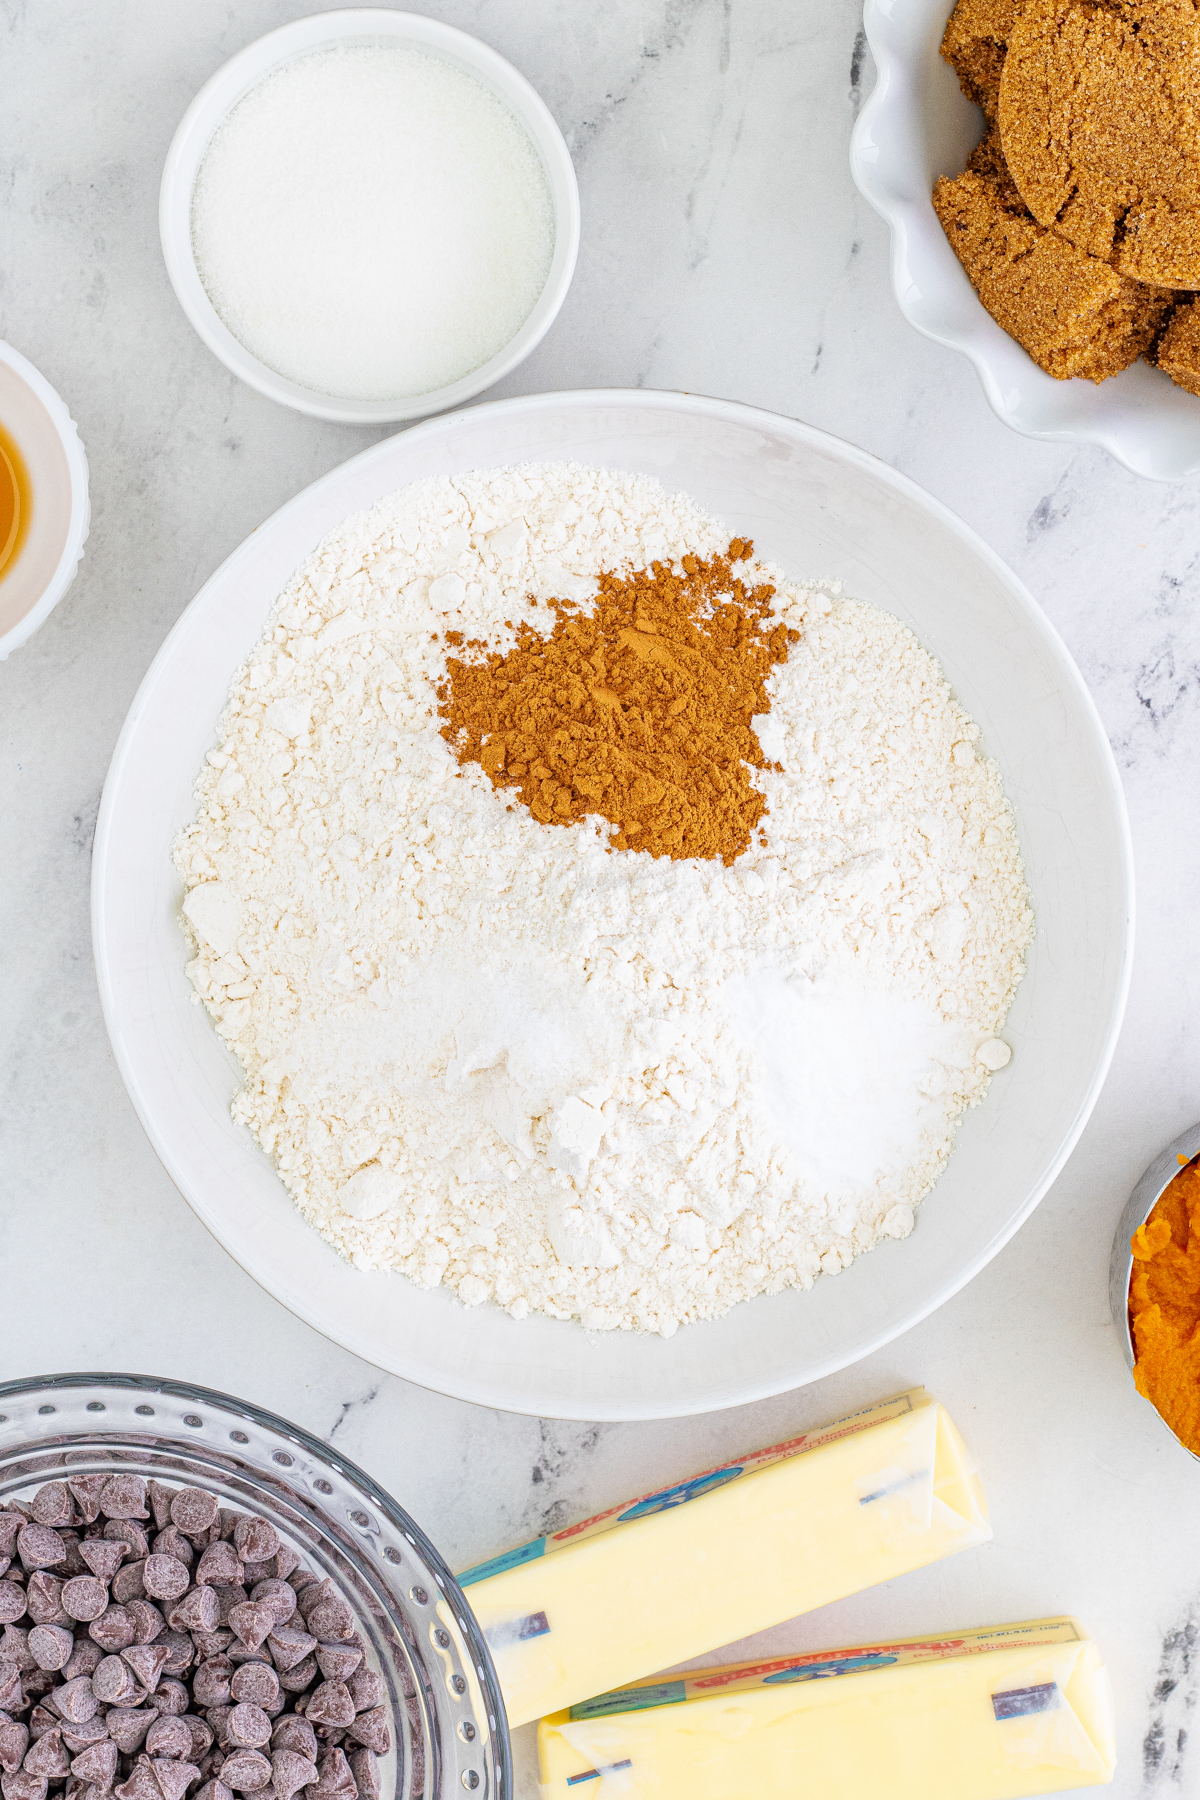 bowl with flour and dry ingredients